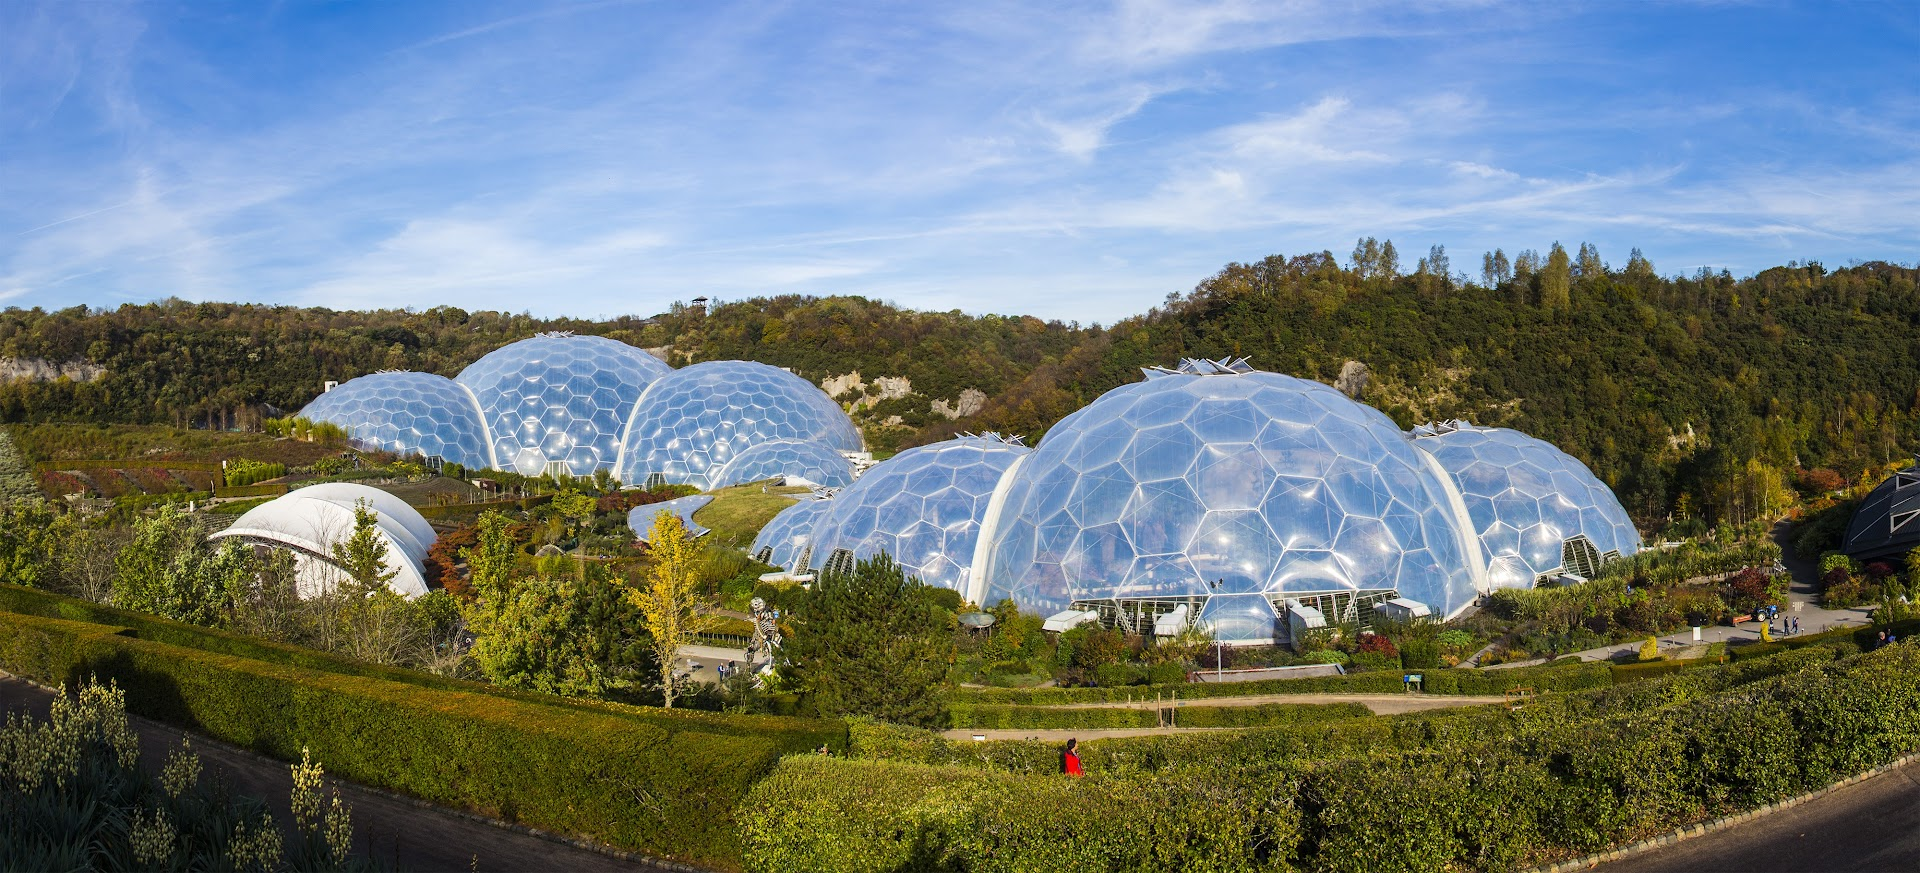 Eden Project, St Austell, Cornwall. England.